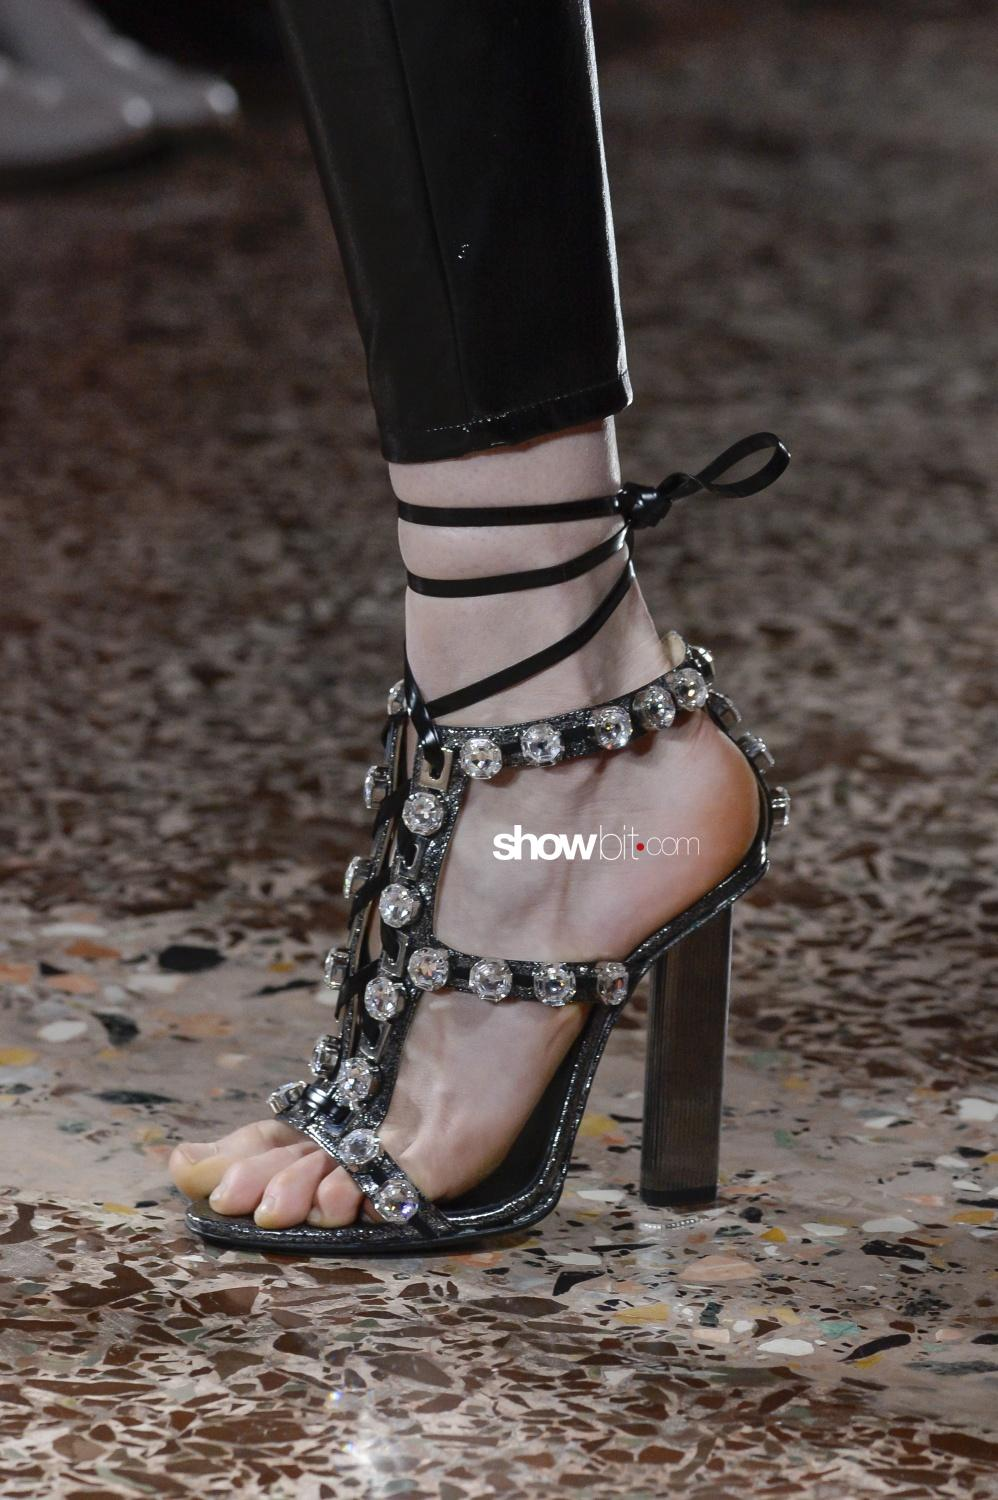 Piccione Piccione close-up shoes Woman Fall Winter 2018 Milano